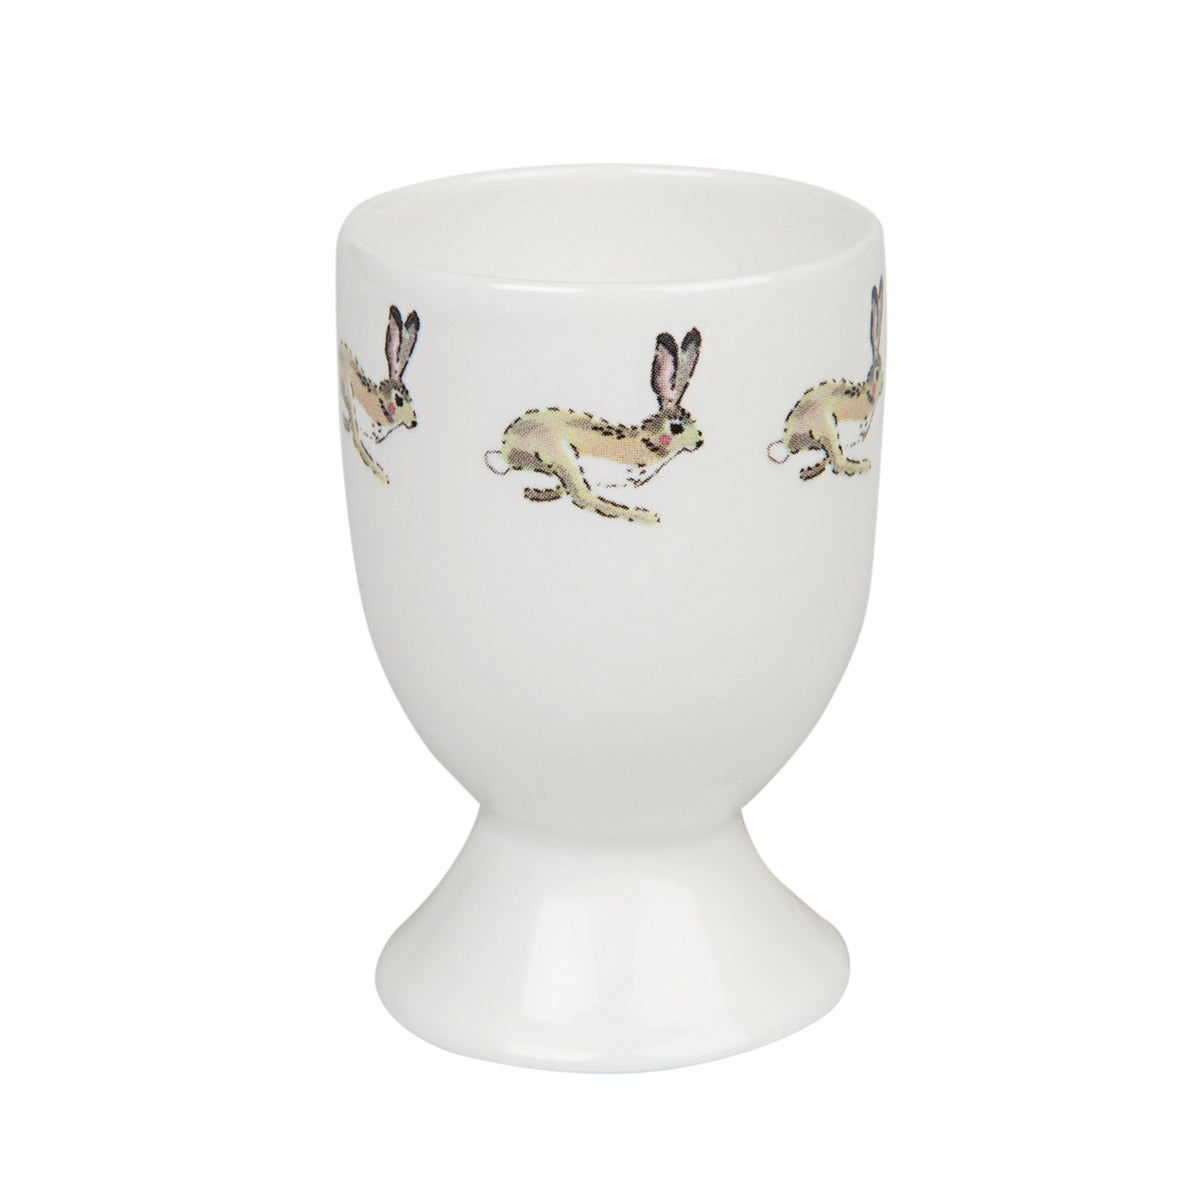 Hare Egg Cup